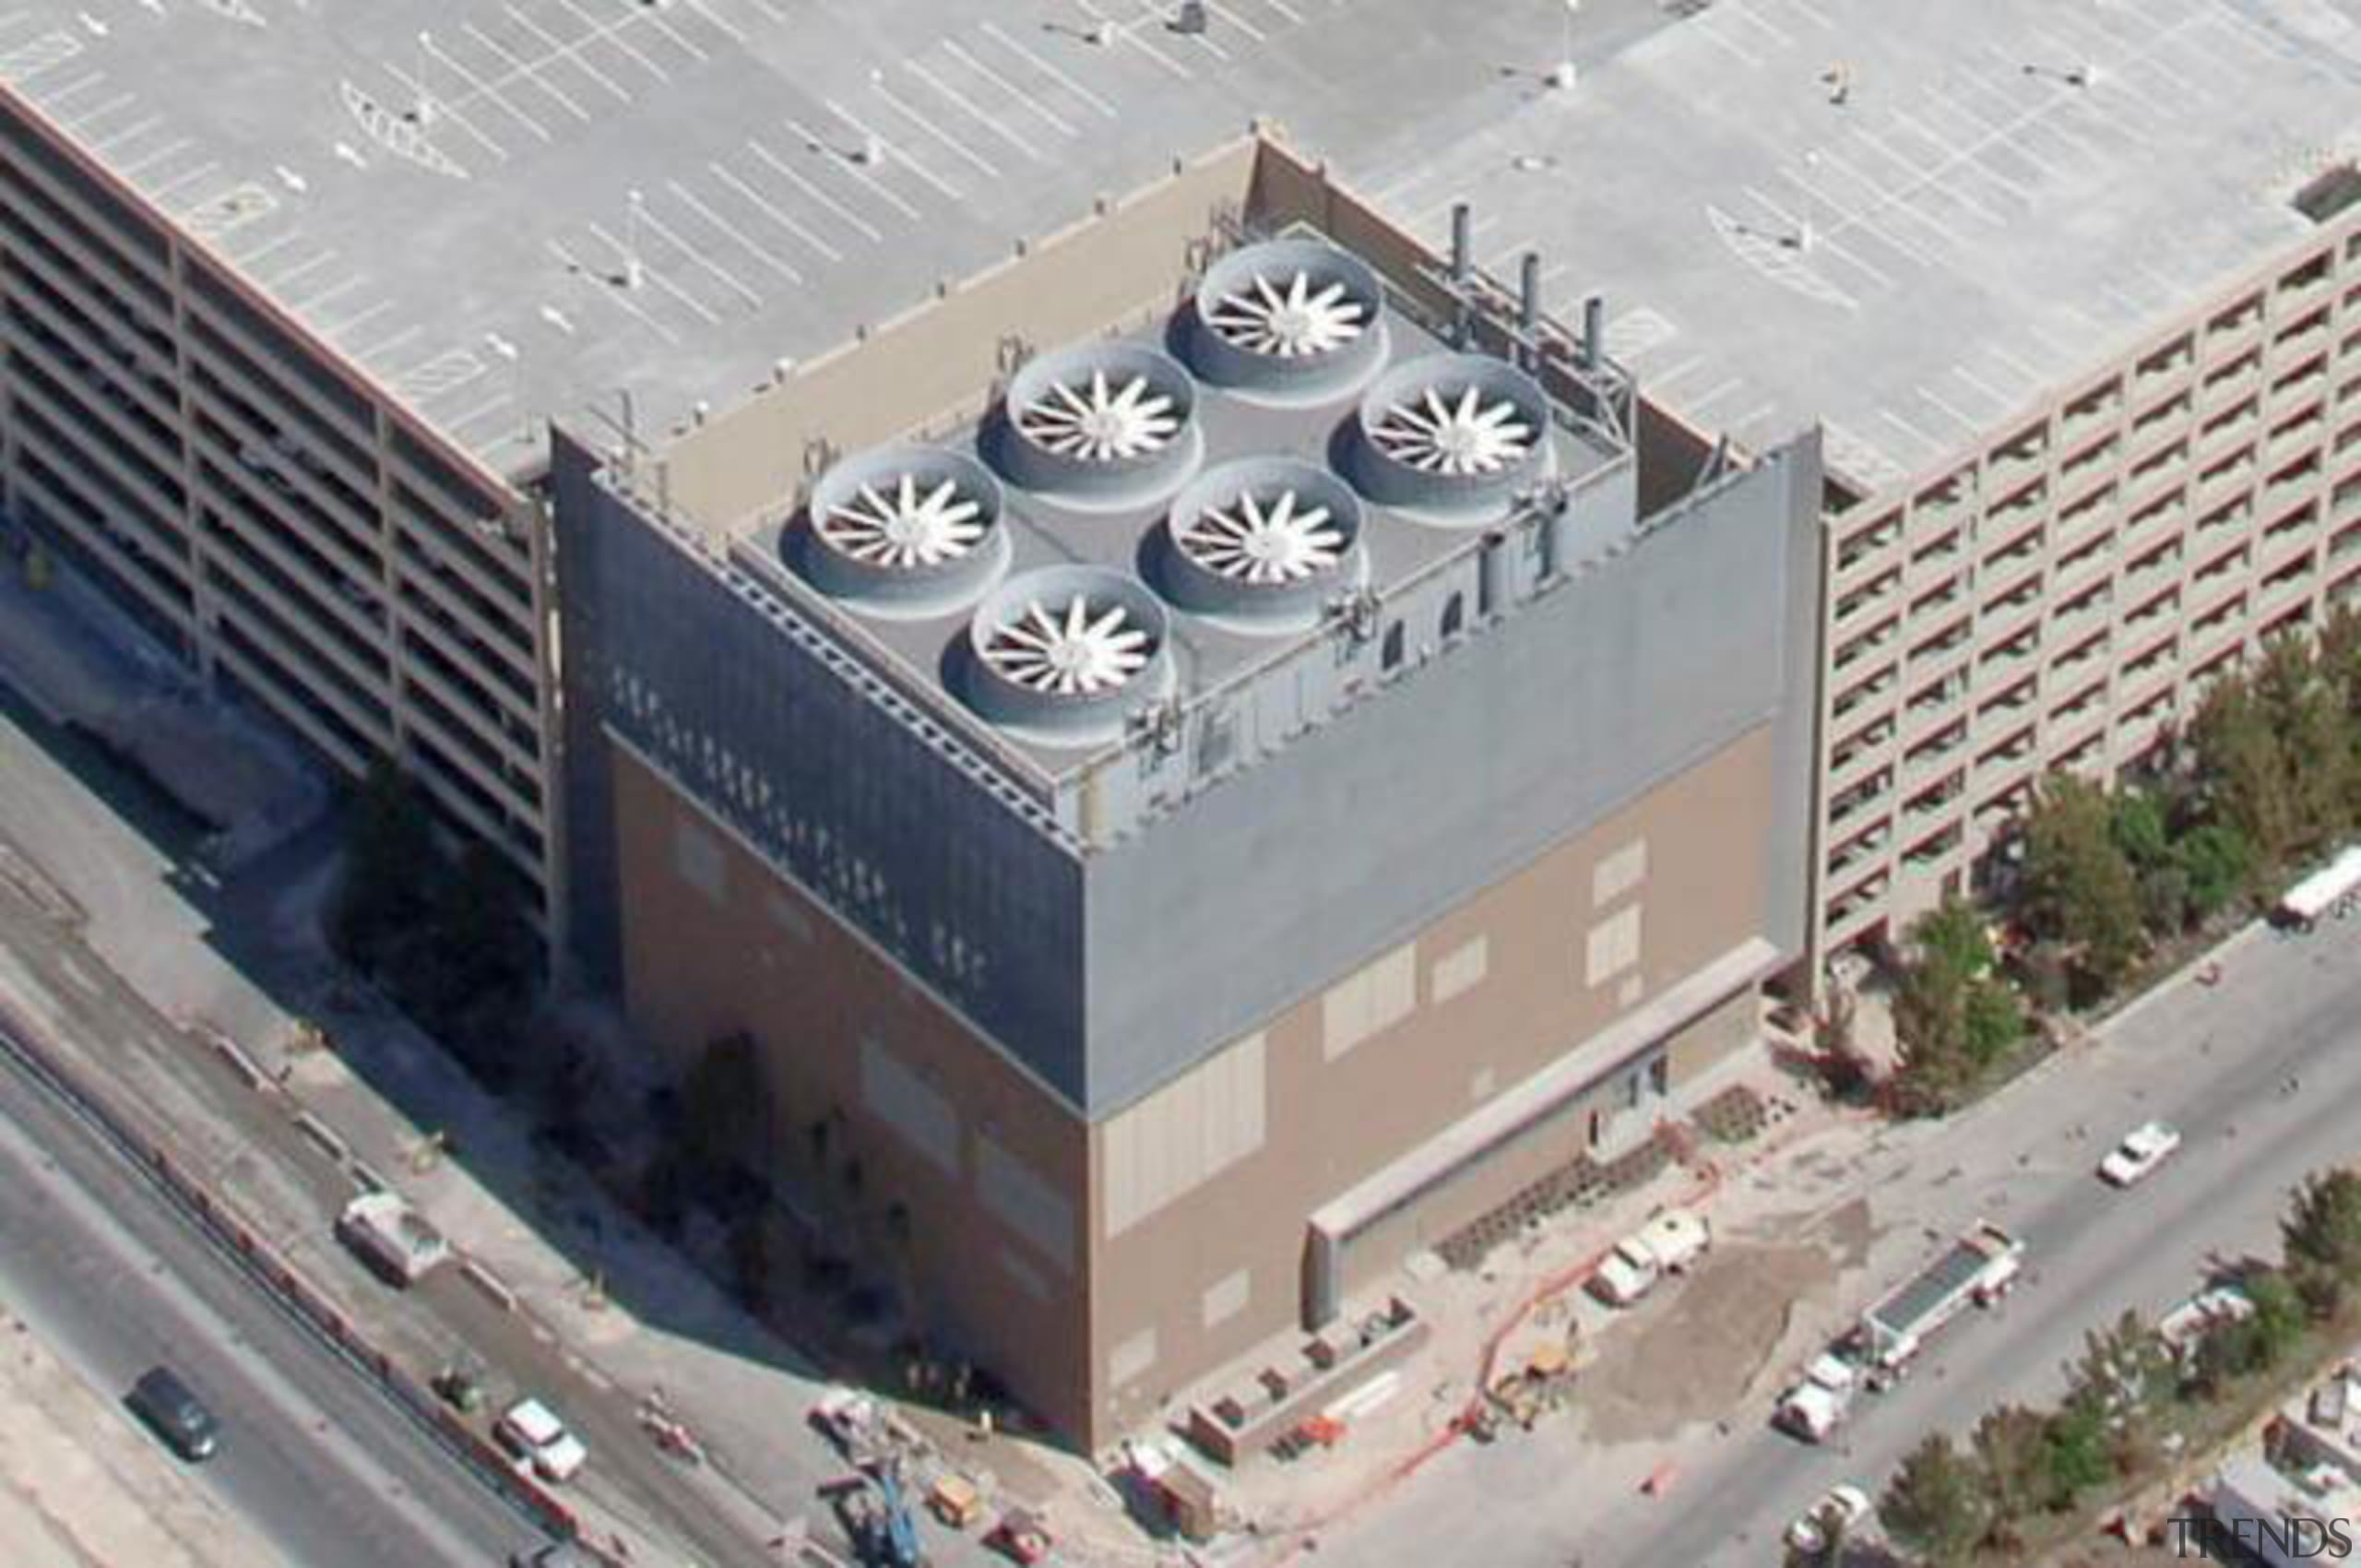 CityCenter, Las Vegas - CityCenter, Las Vegas - aerial photography, architecture, building, roof, gray